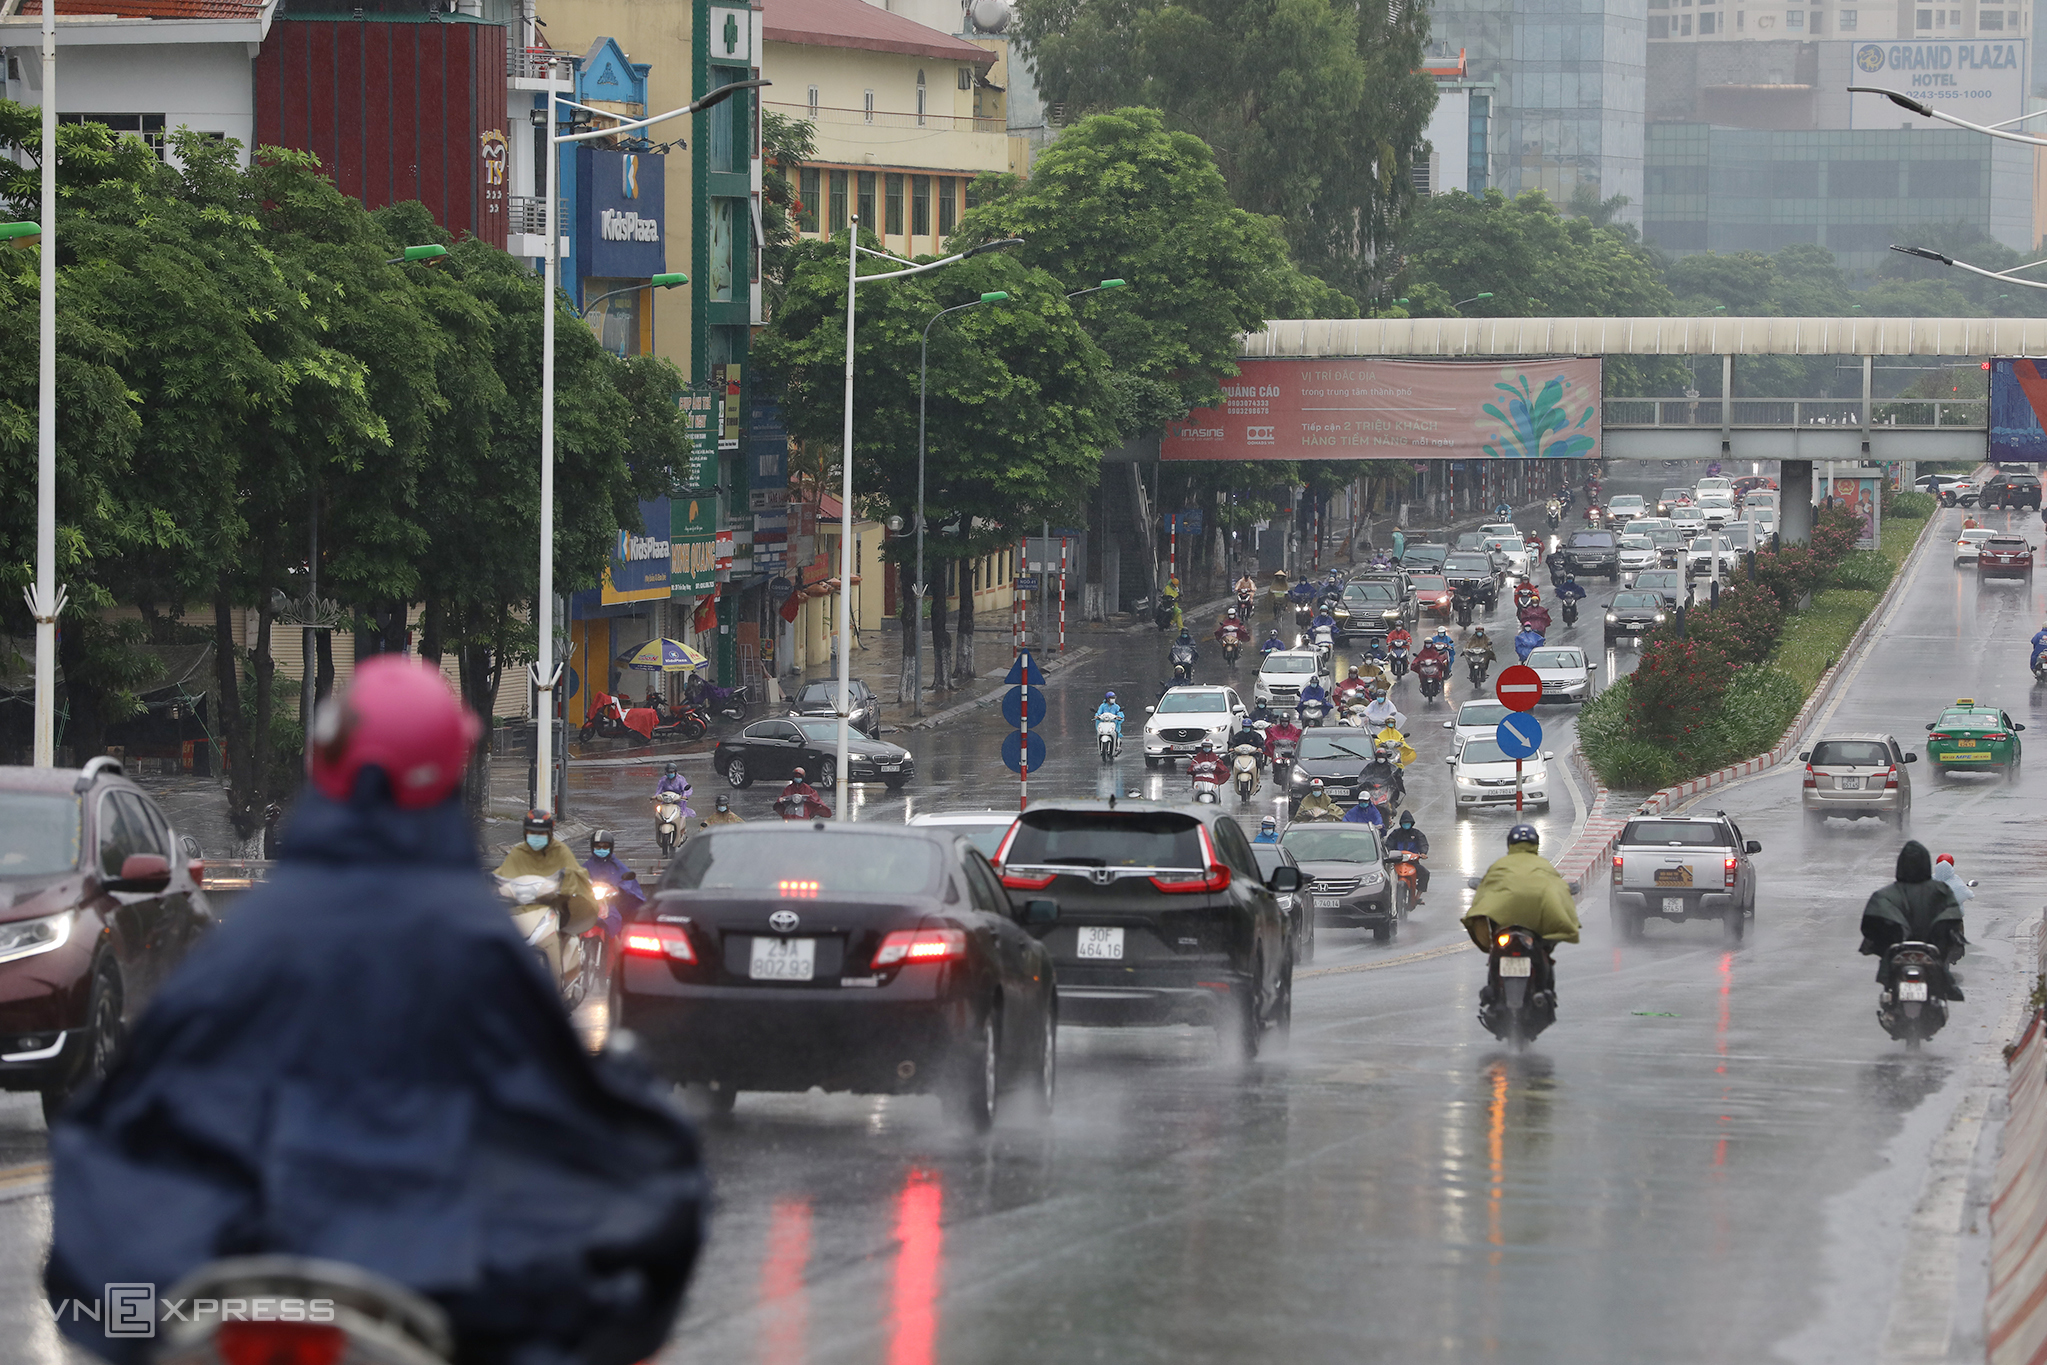 Hanoi teems with traffic despite Covid social distancing